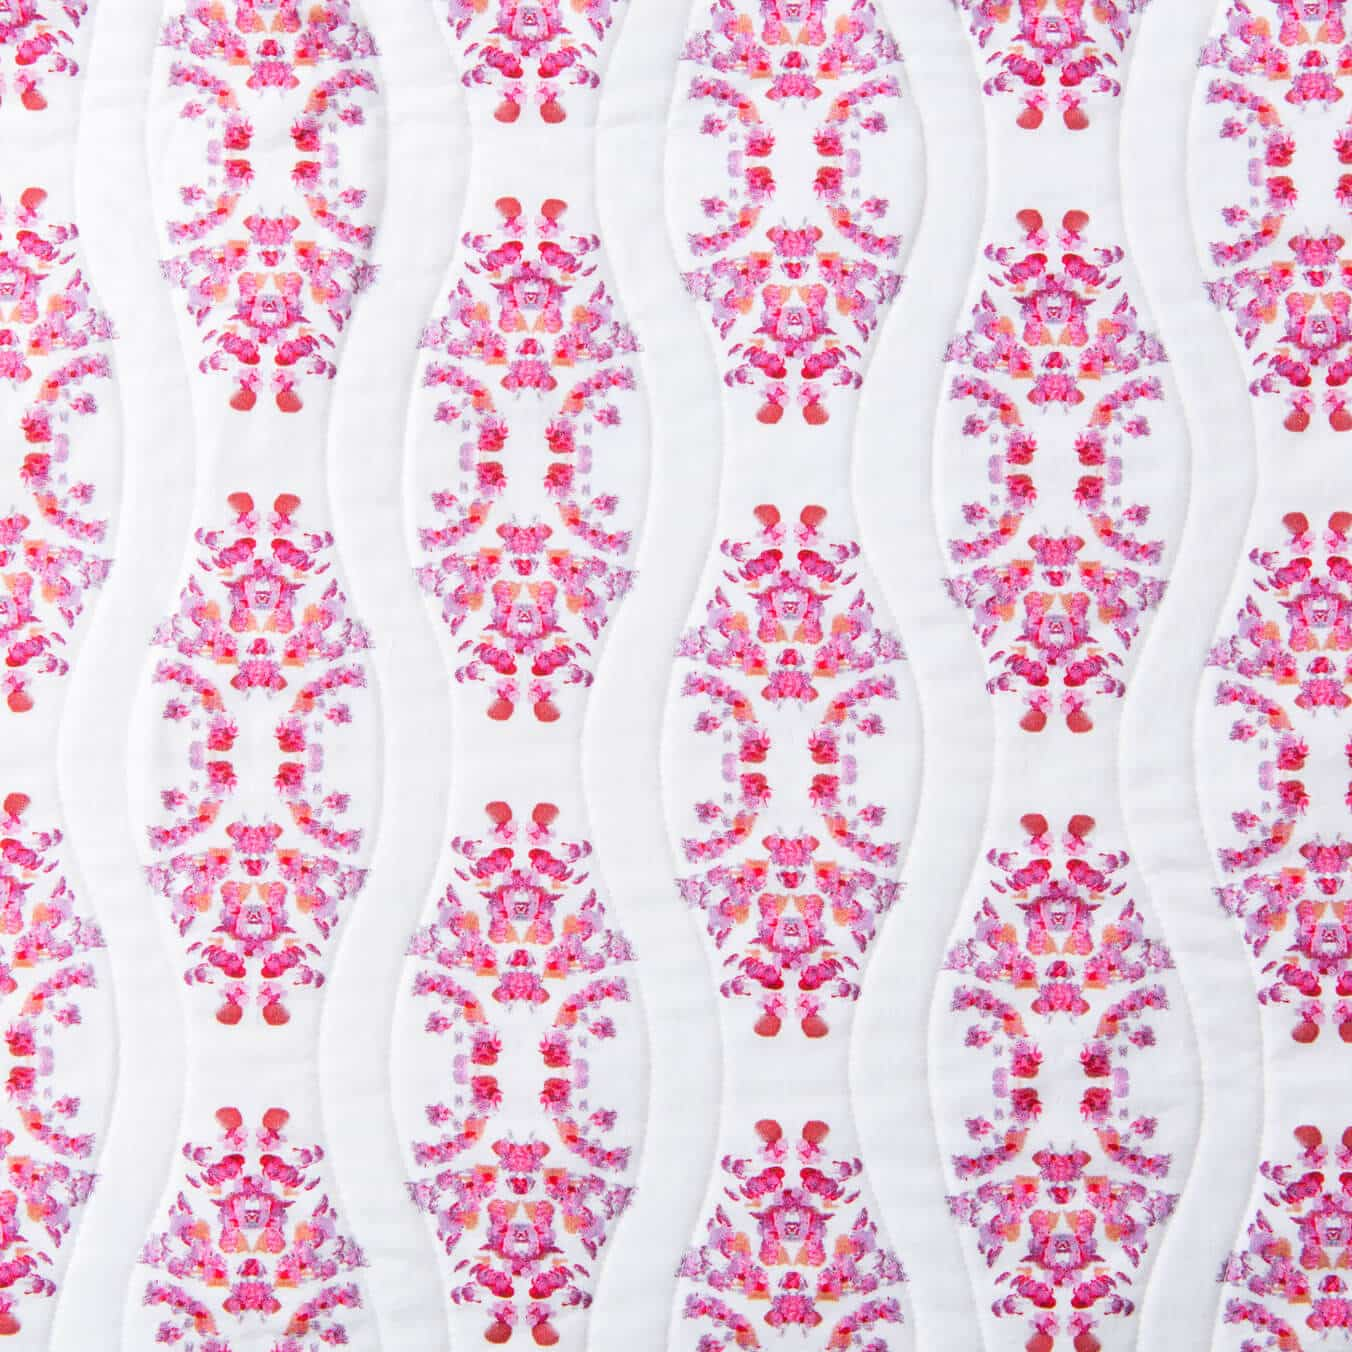 Luxury organic pink abstract geometric quilted coverlet pattern detail